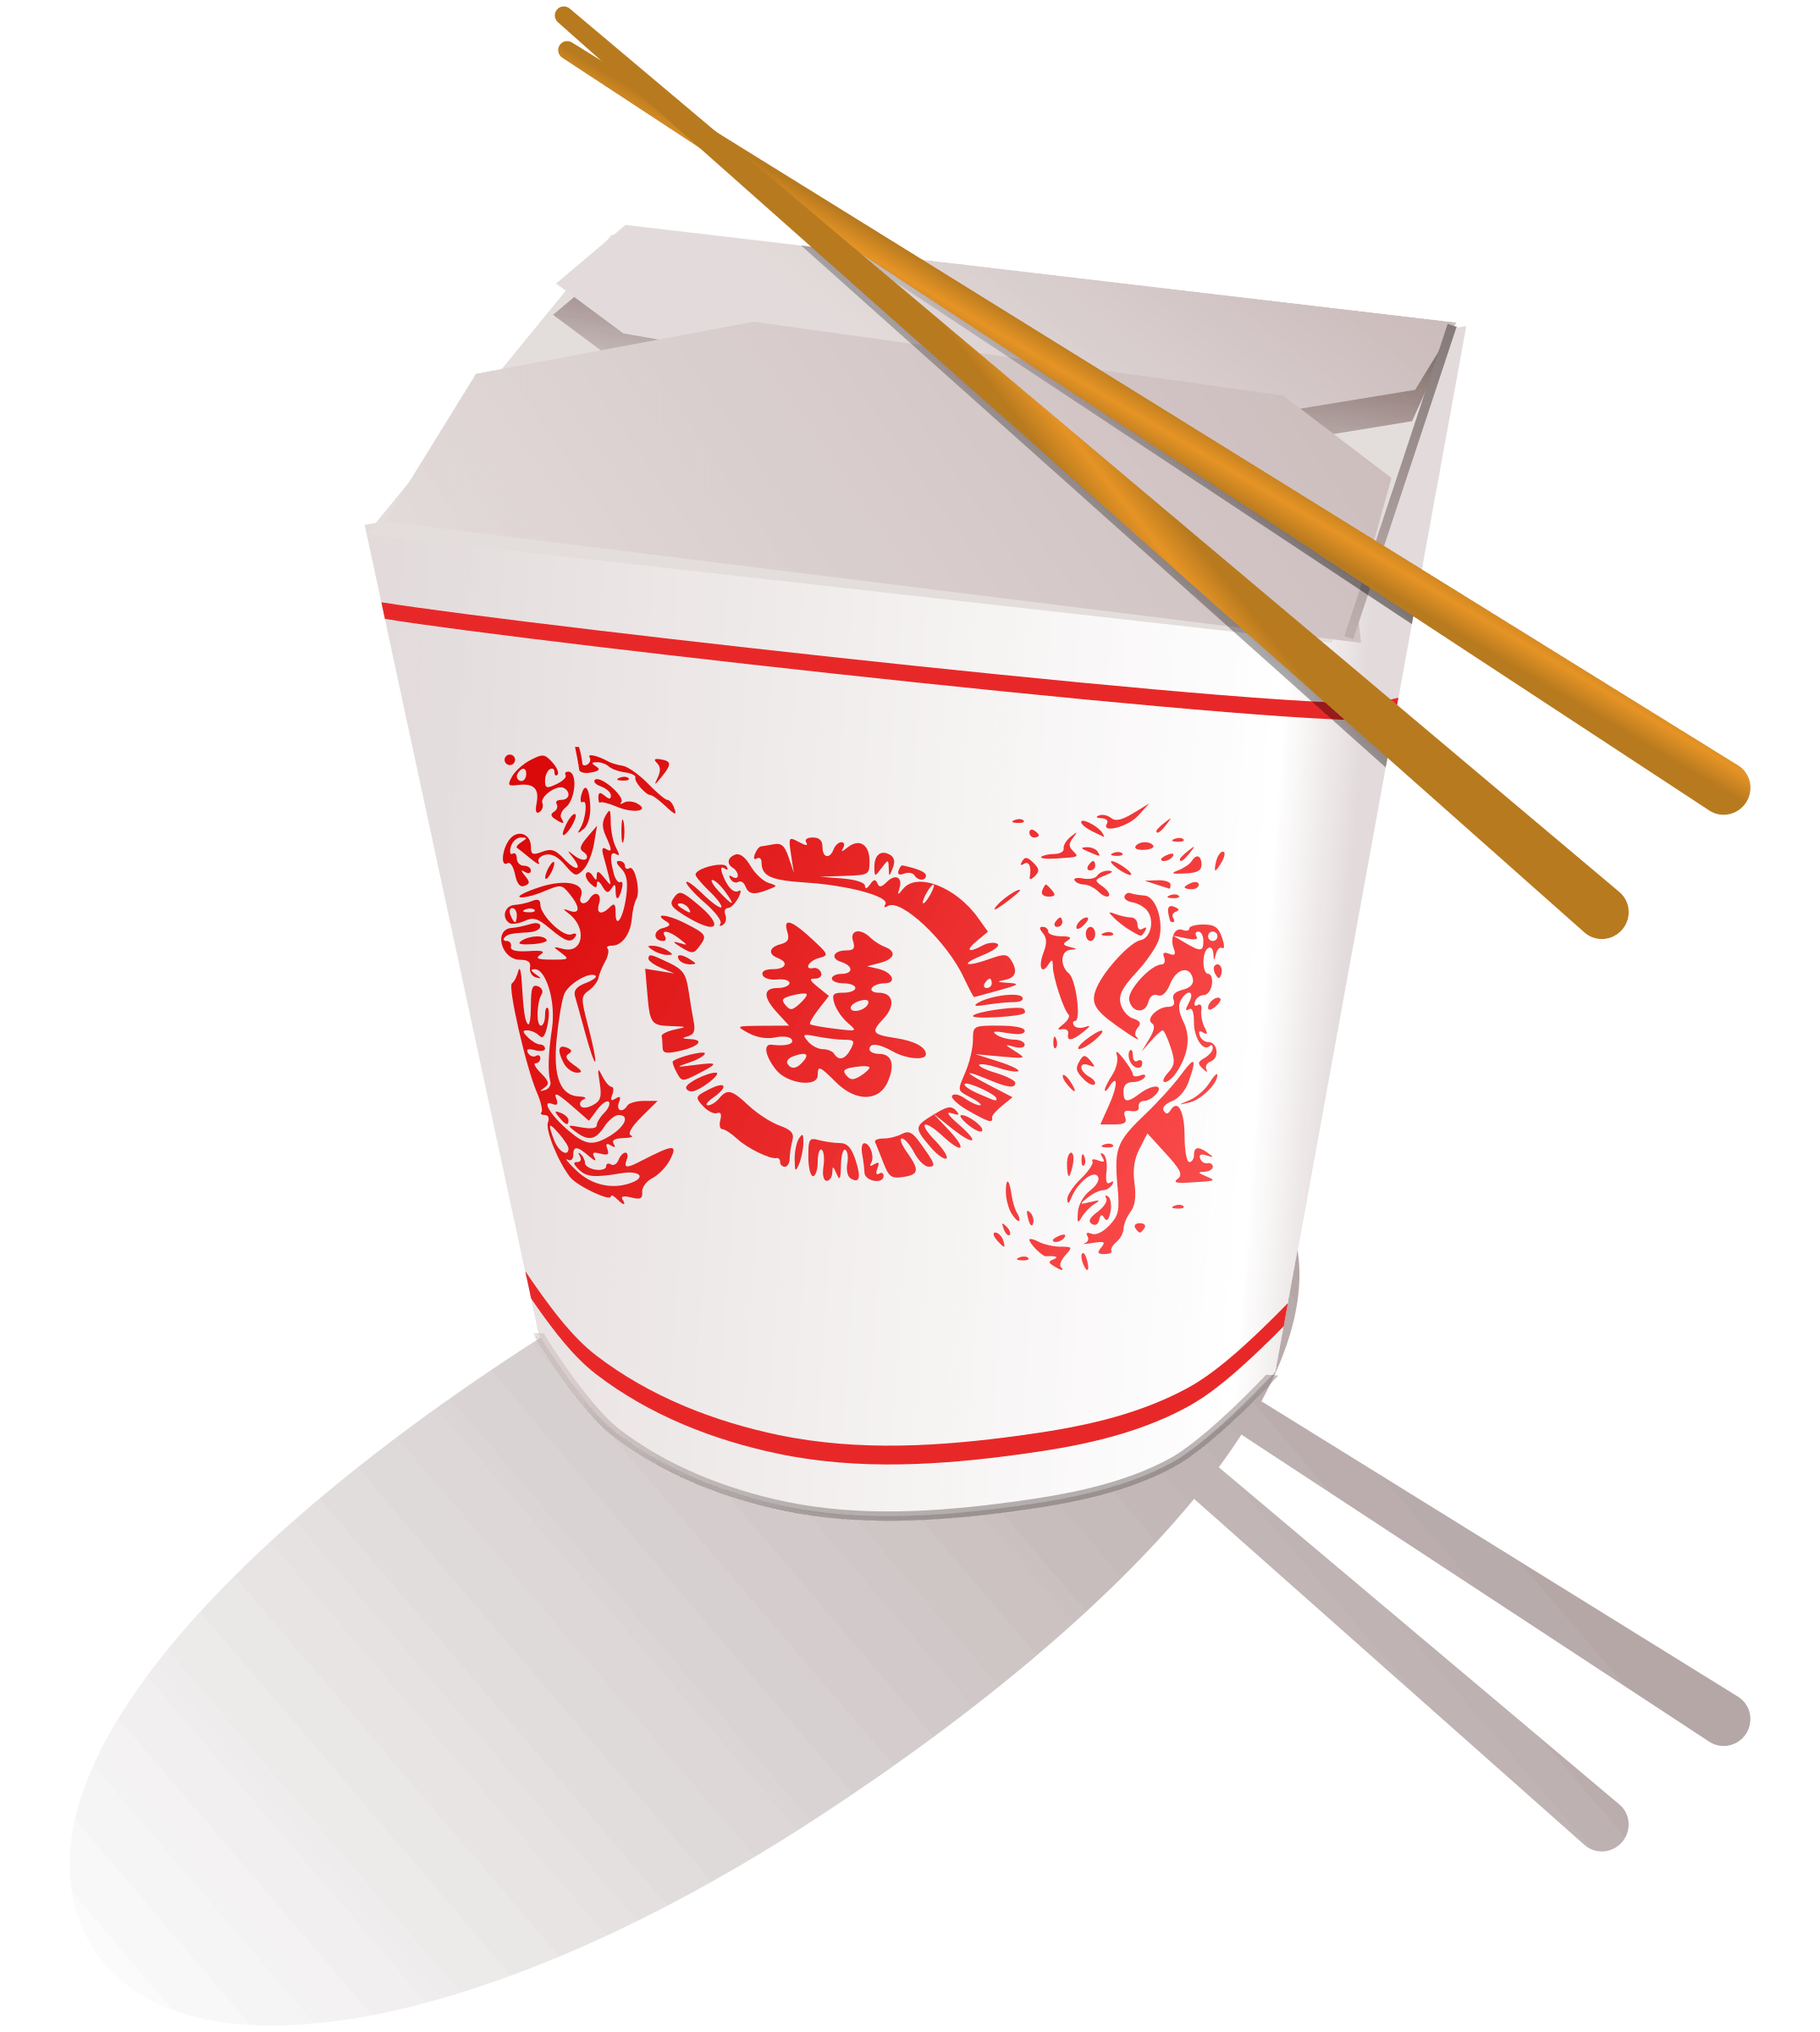 Chinese food box png. Transparent images stickpng